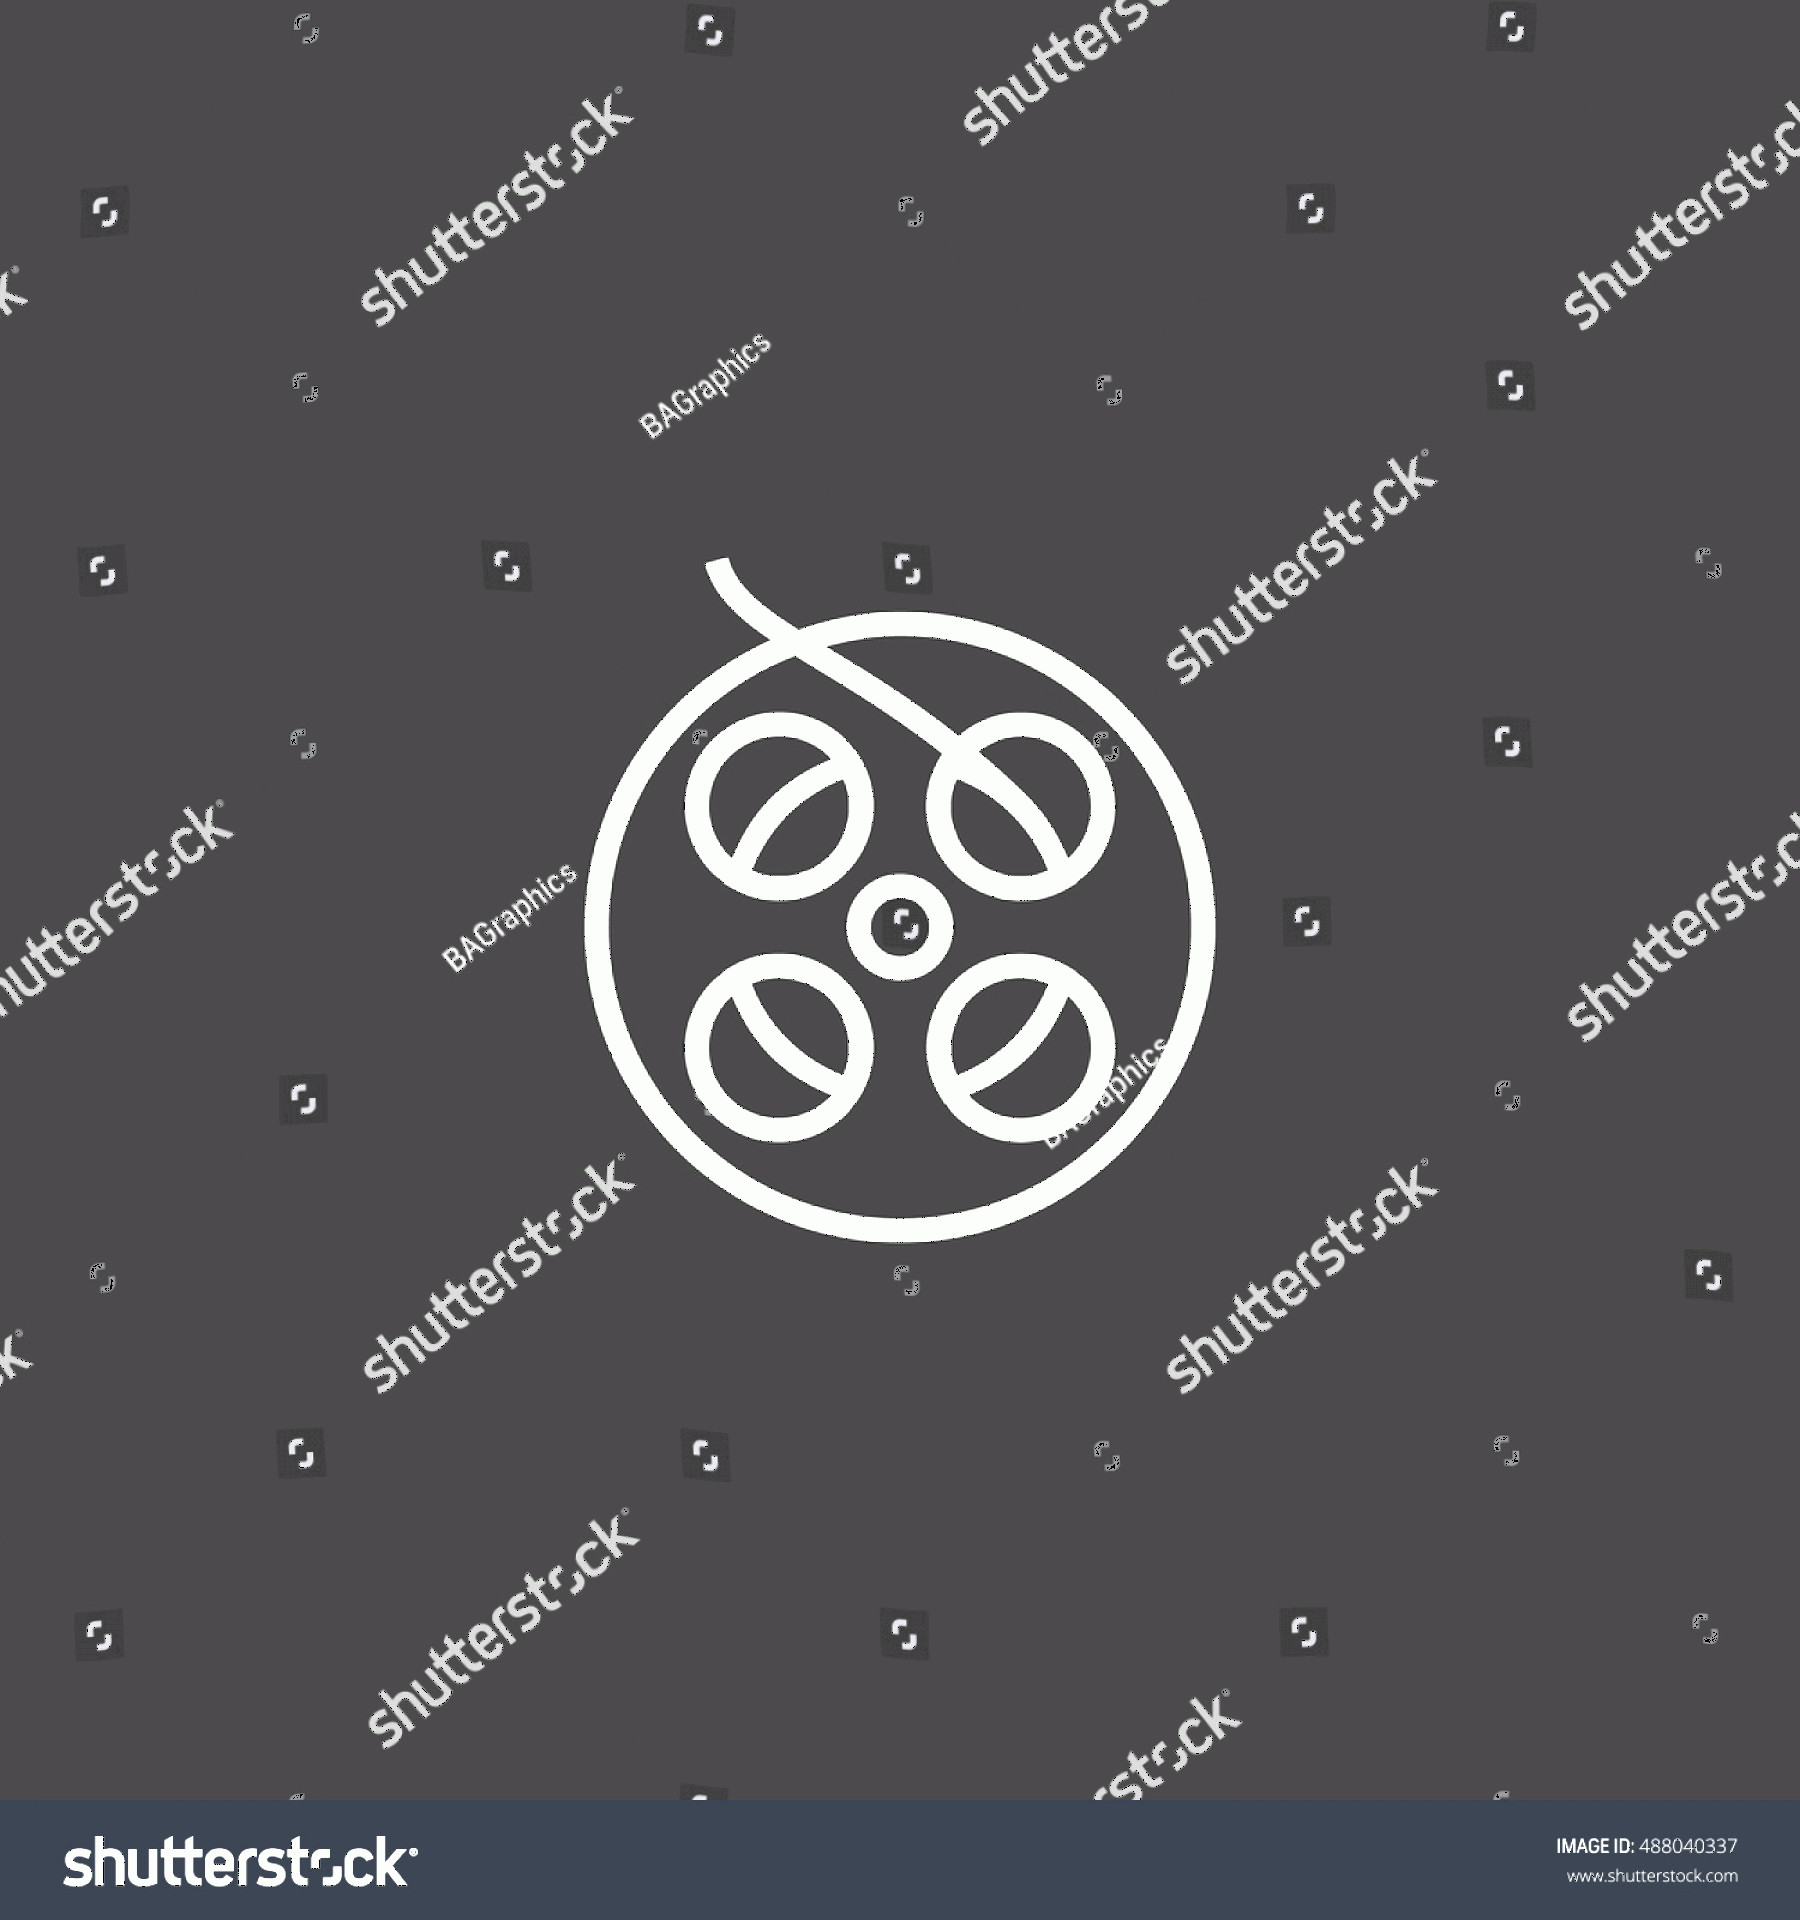 Symbol Vector Clip Art: Film Reel Icon Vector Clip Art